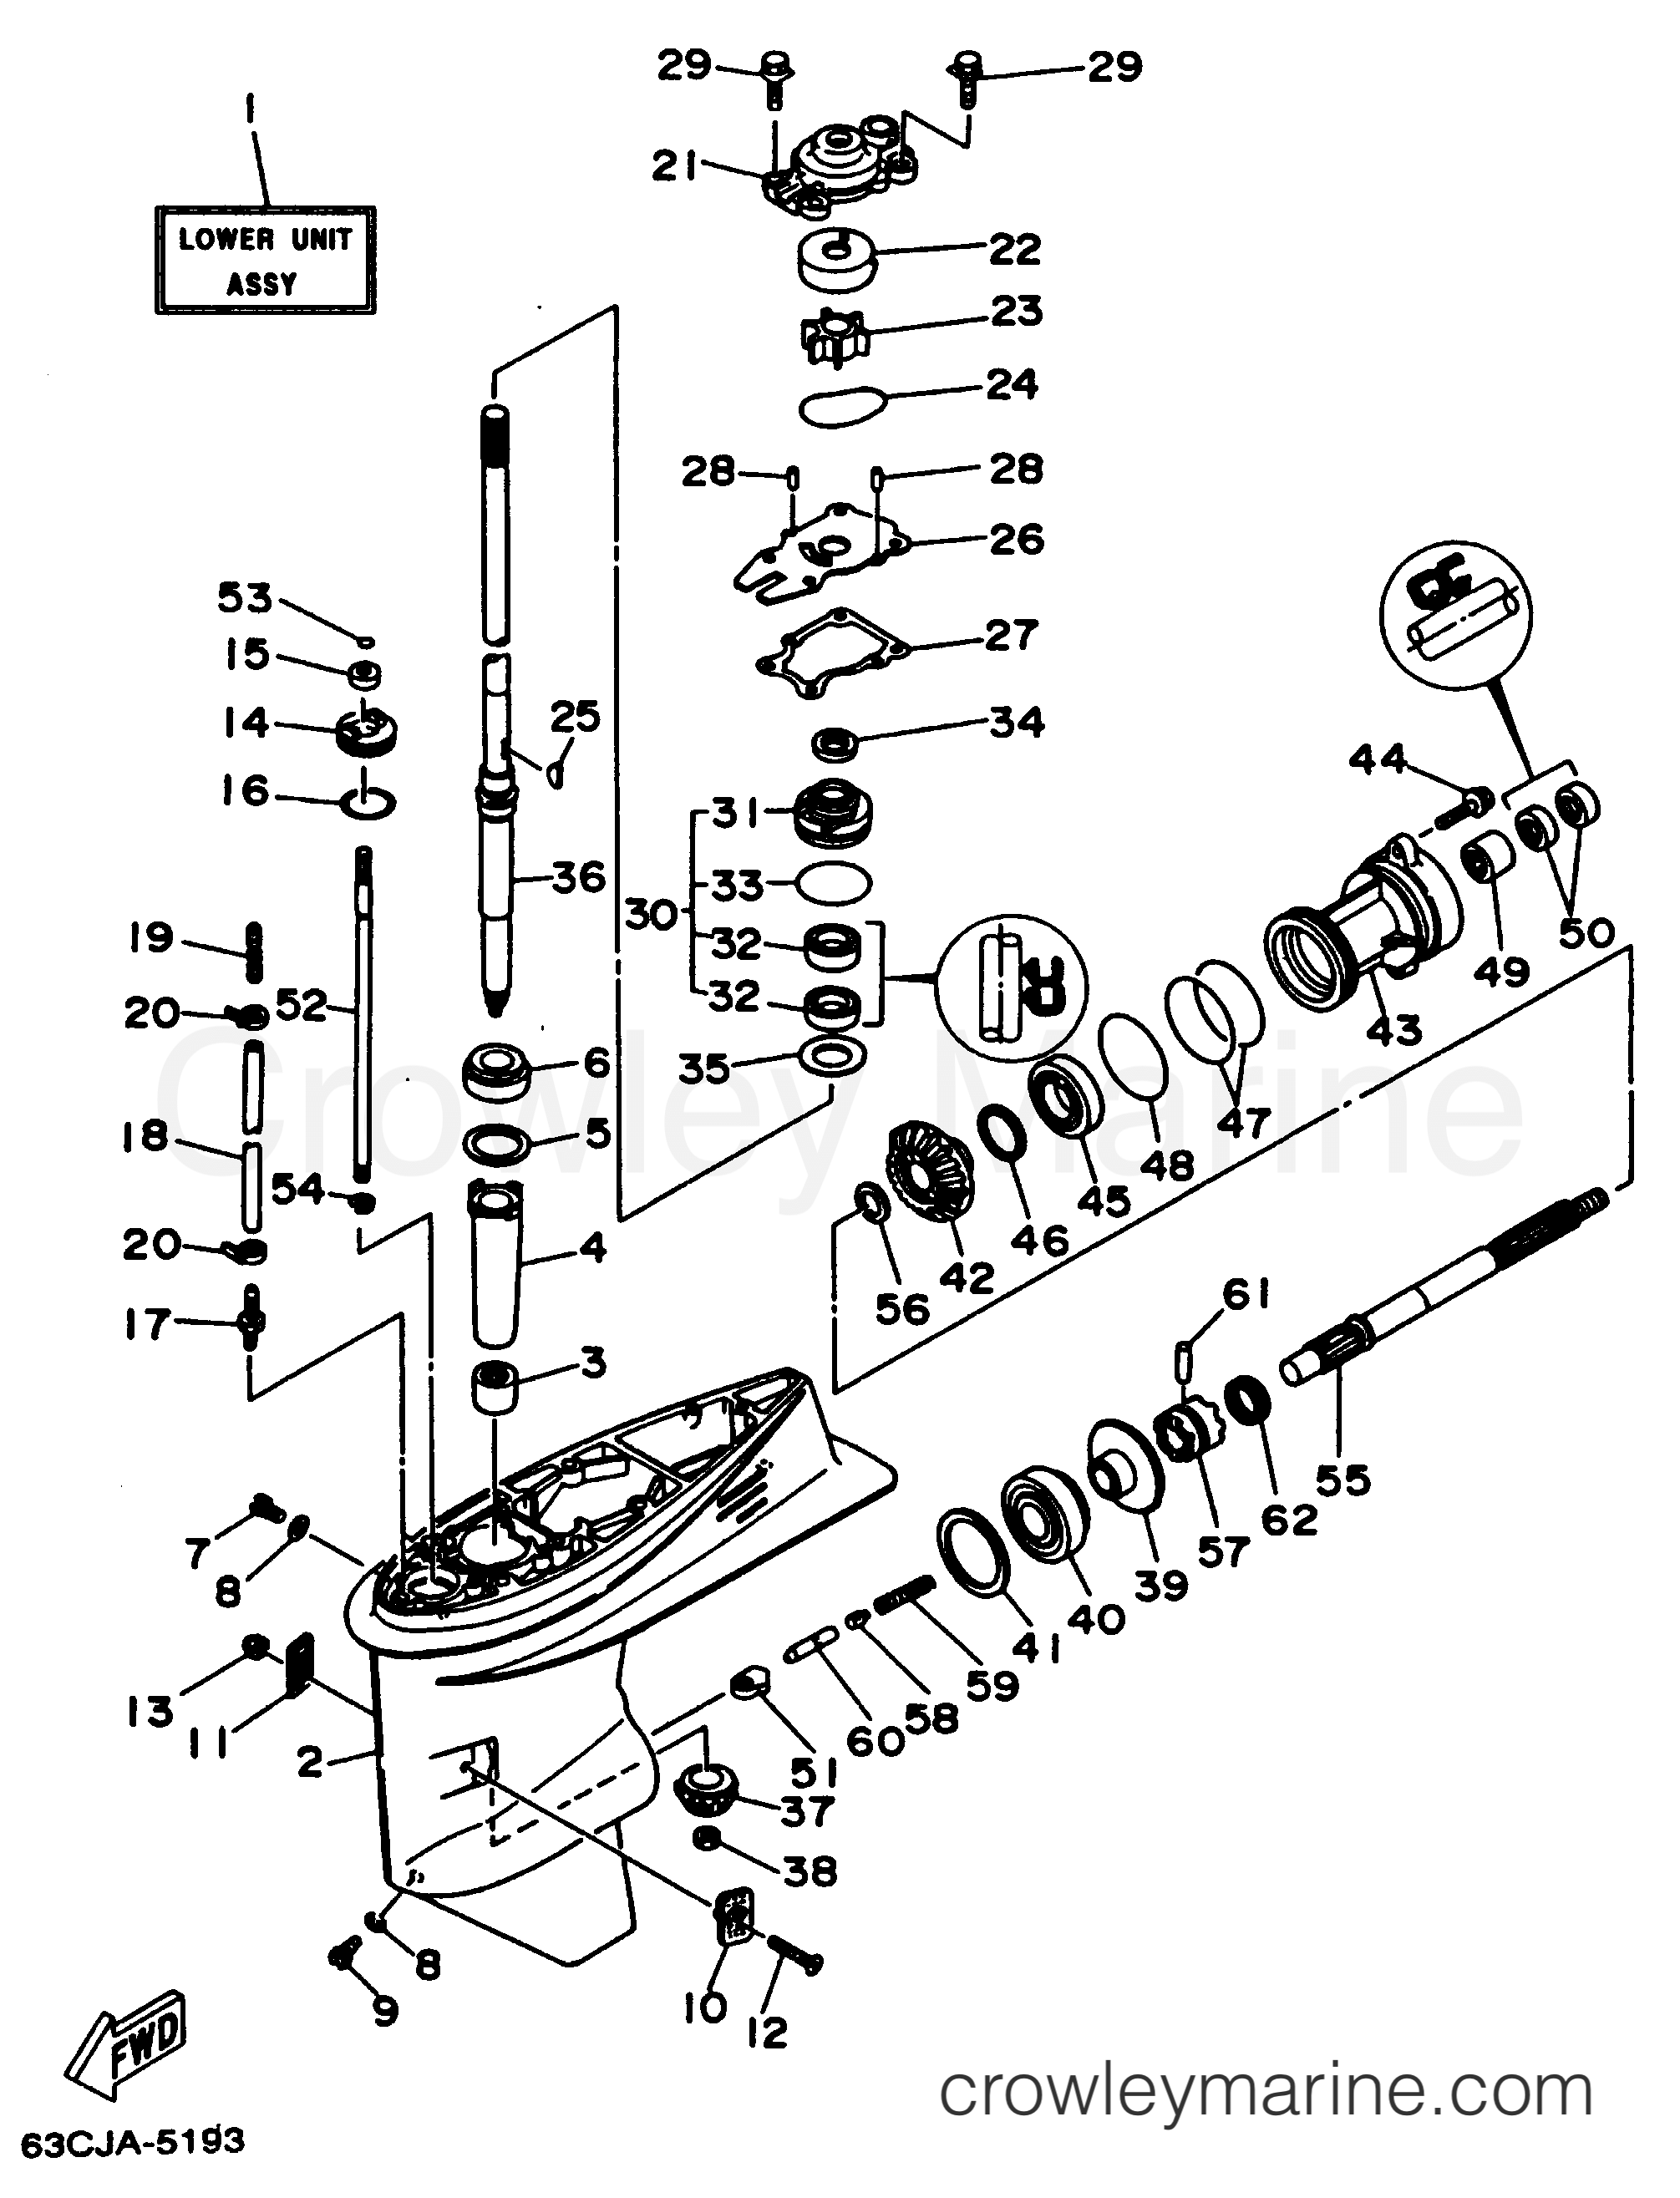 outboard motor lower unit diagram wiring for chinese quad bike casing drive 1 1997 yamaha 50hp 50ejrv